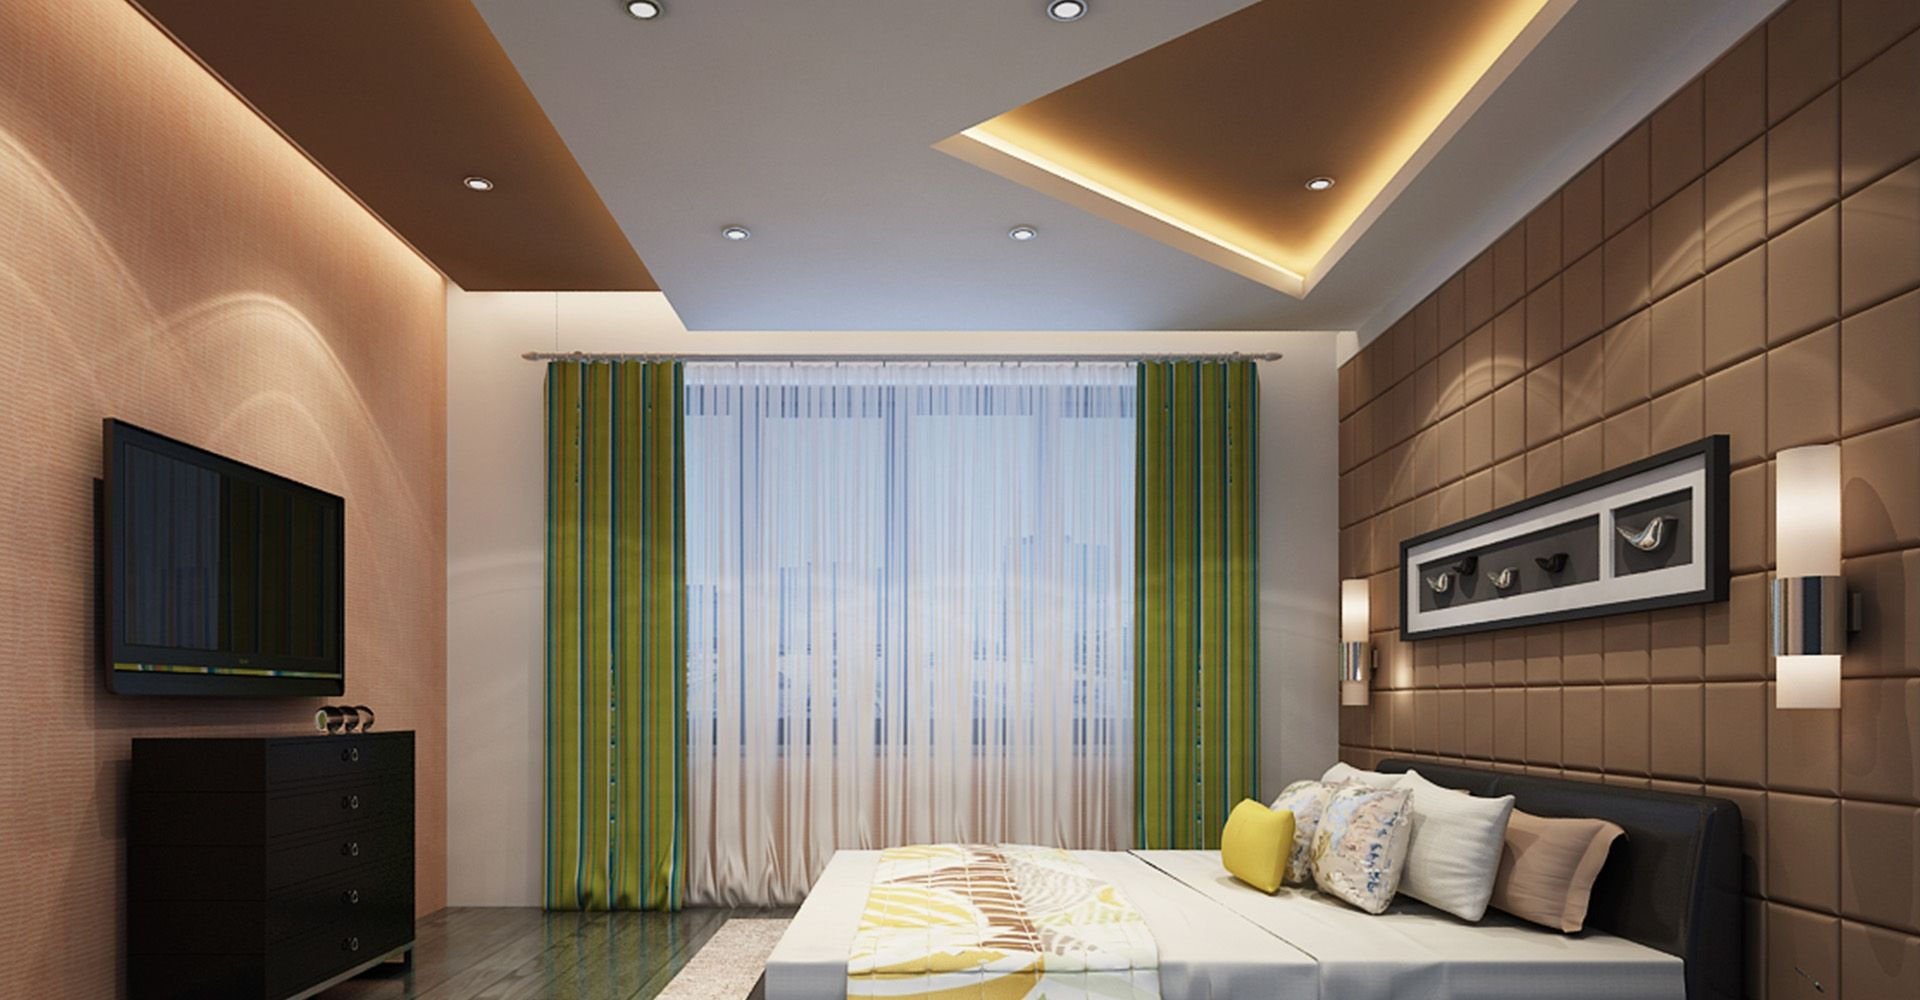 Ceiling design for bedroom bedroom decorating is a pricey event